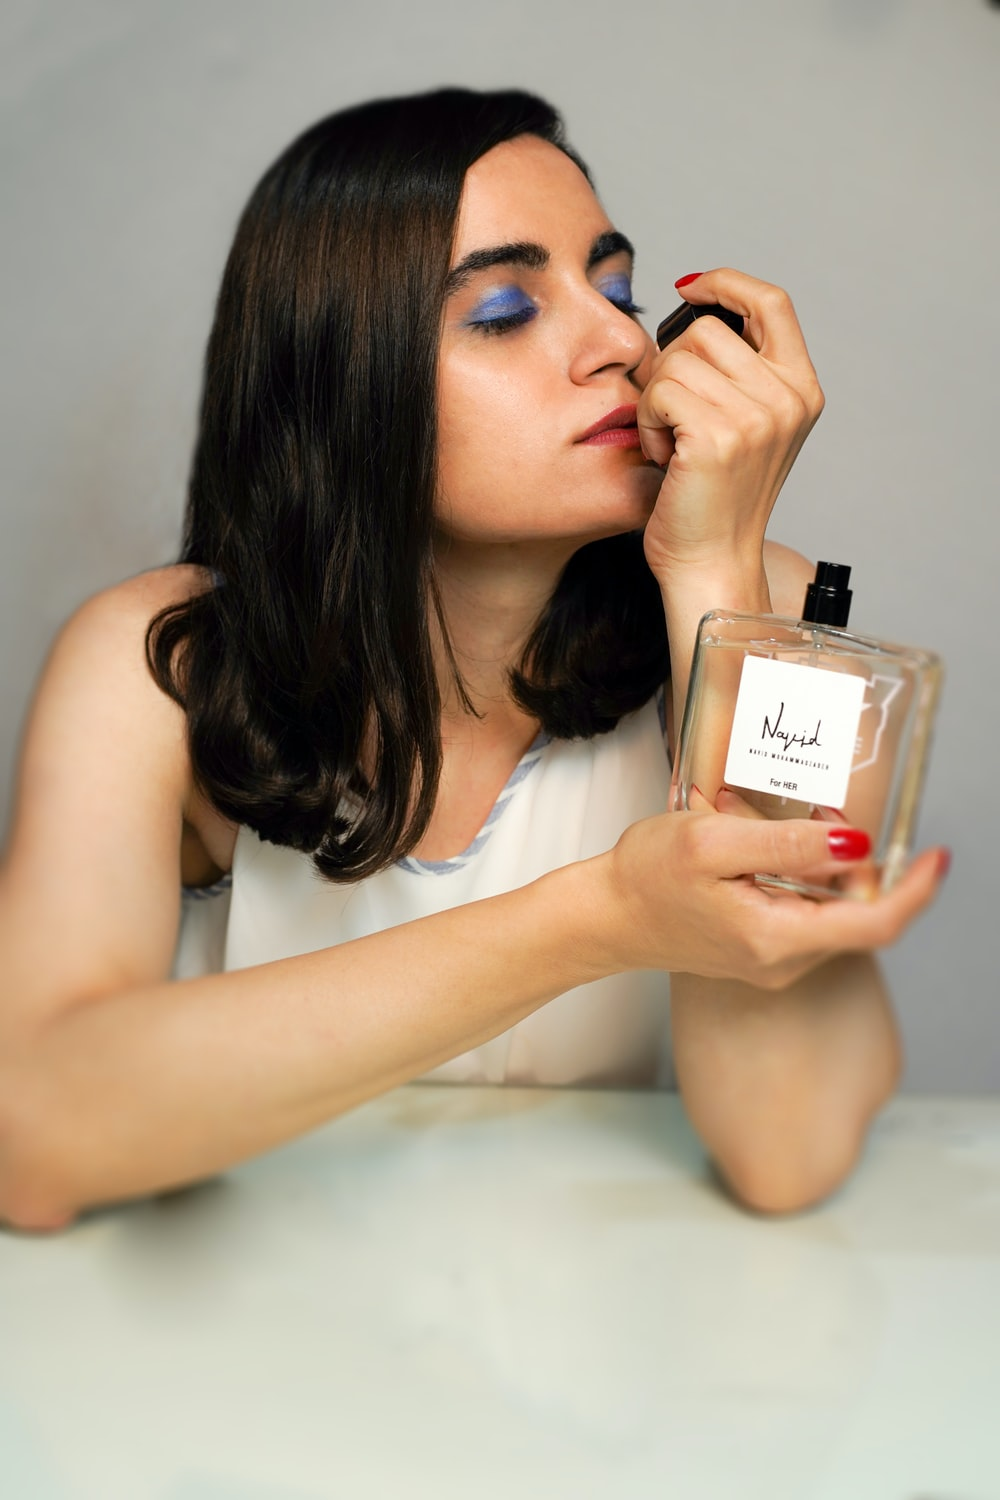 woman in white tank top holding perfume bottle